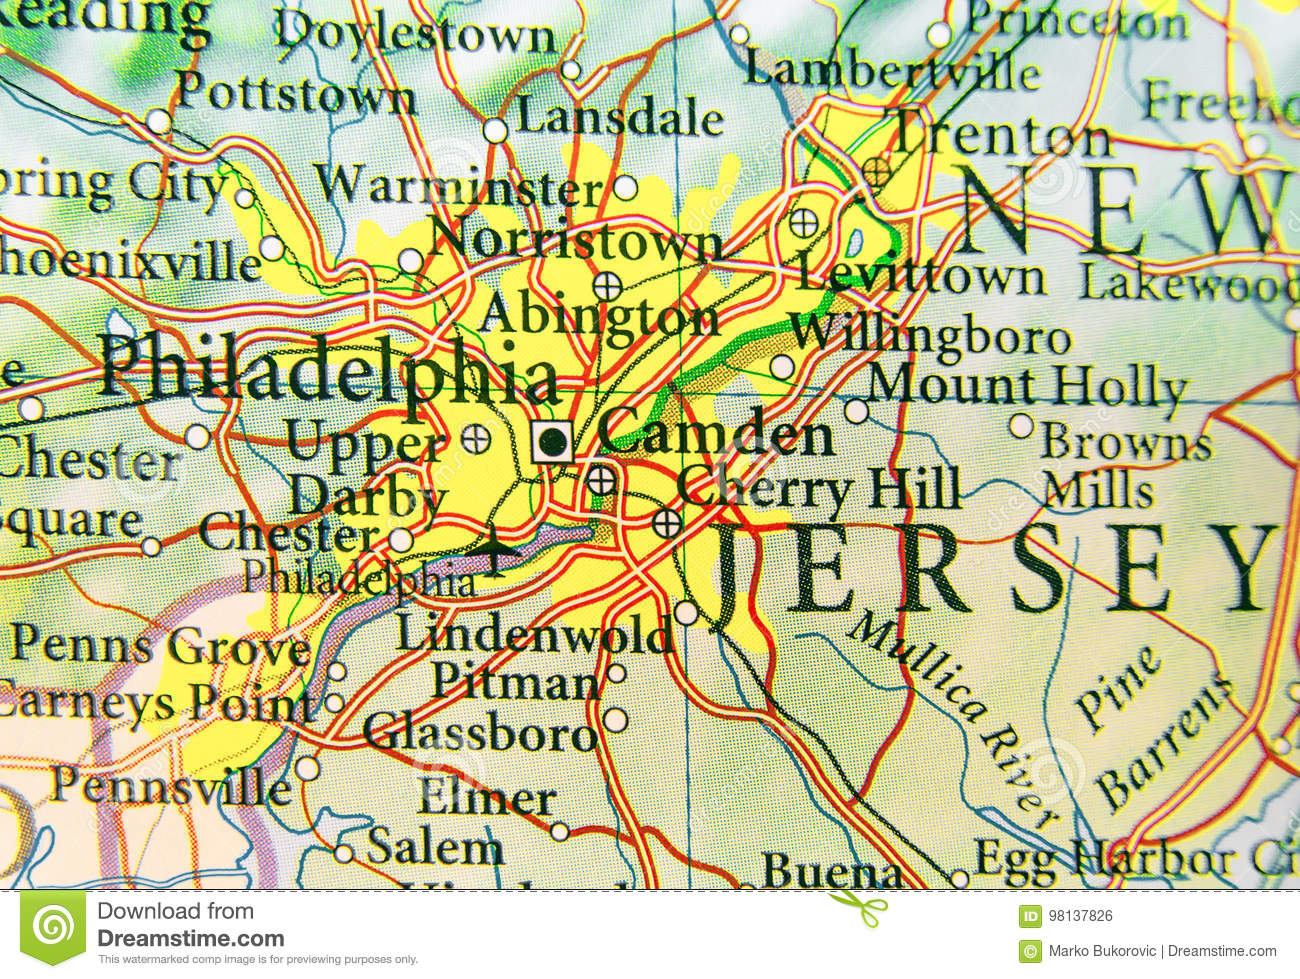 Geographic Map Of Us City Philadelphia And Other Important Cities - Philadelphia-on-the-us-map